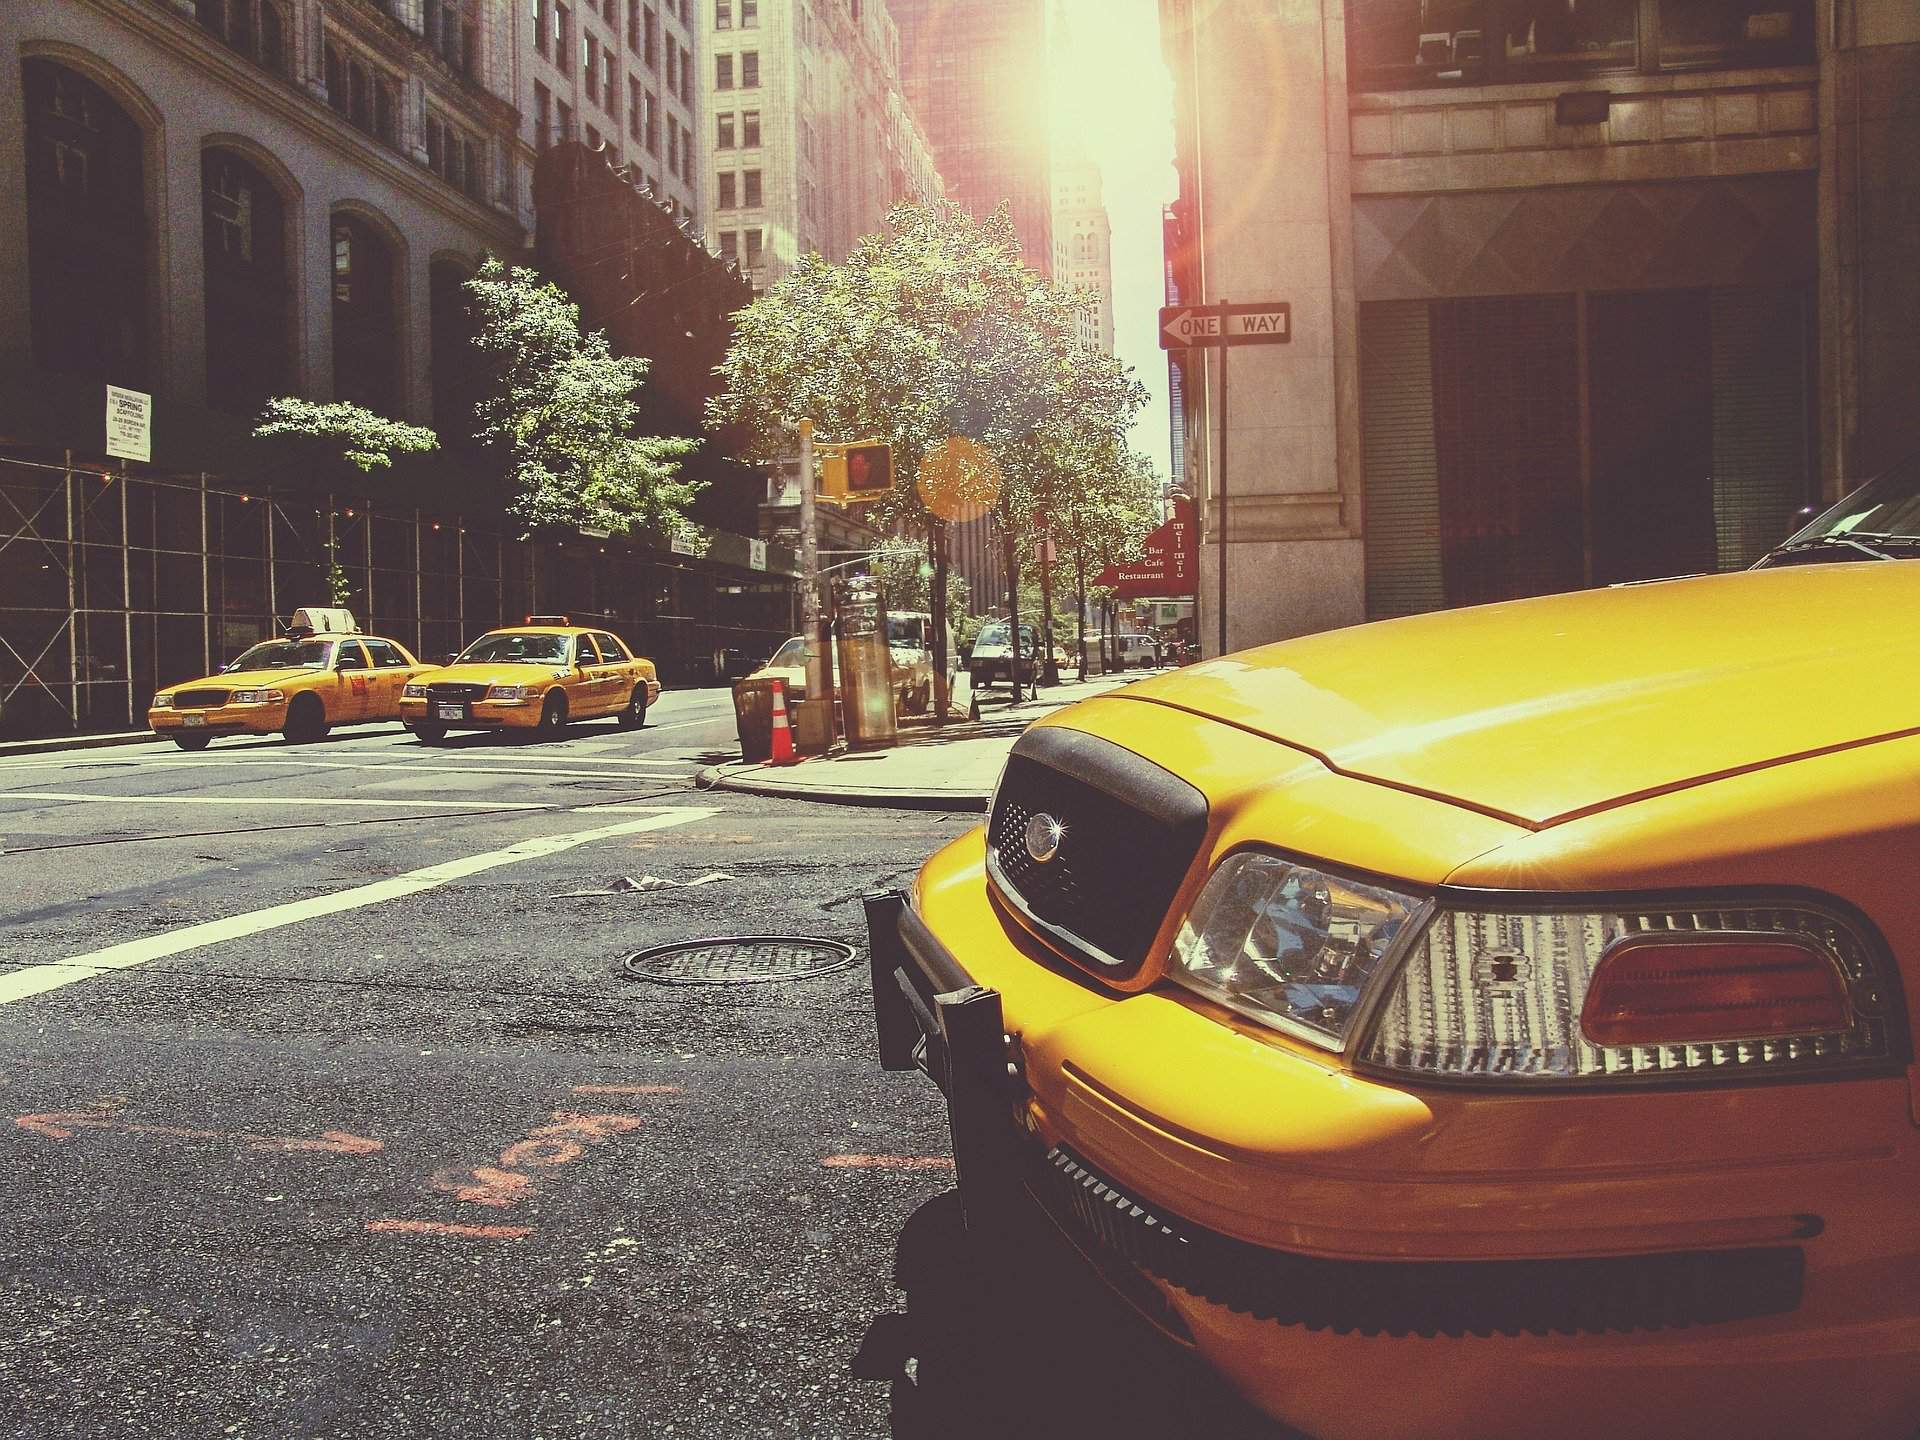 Taxi cab theory dating